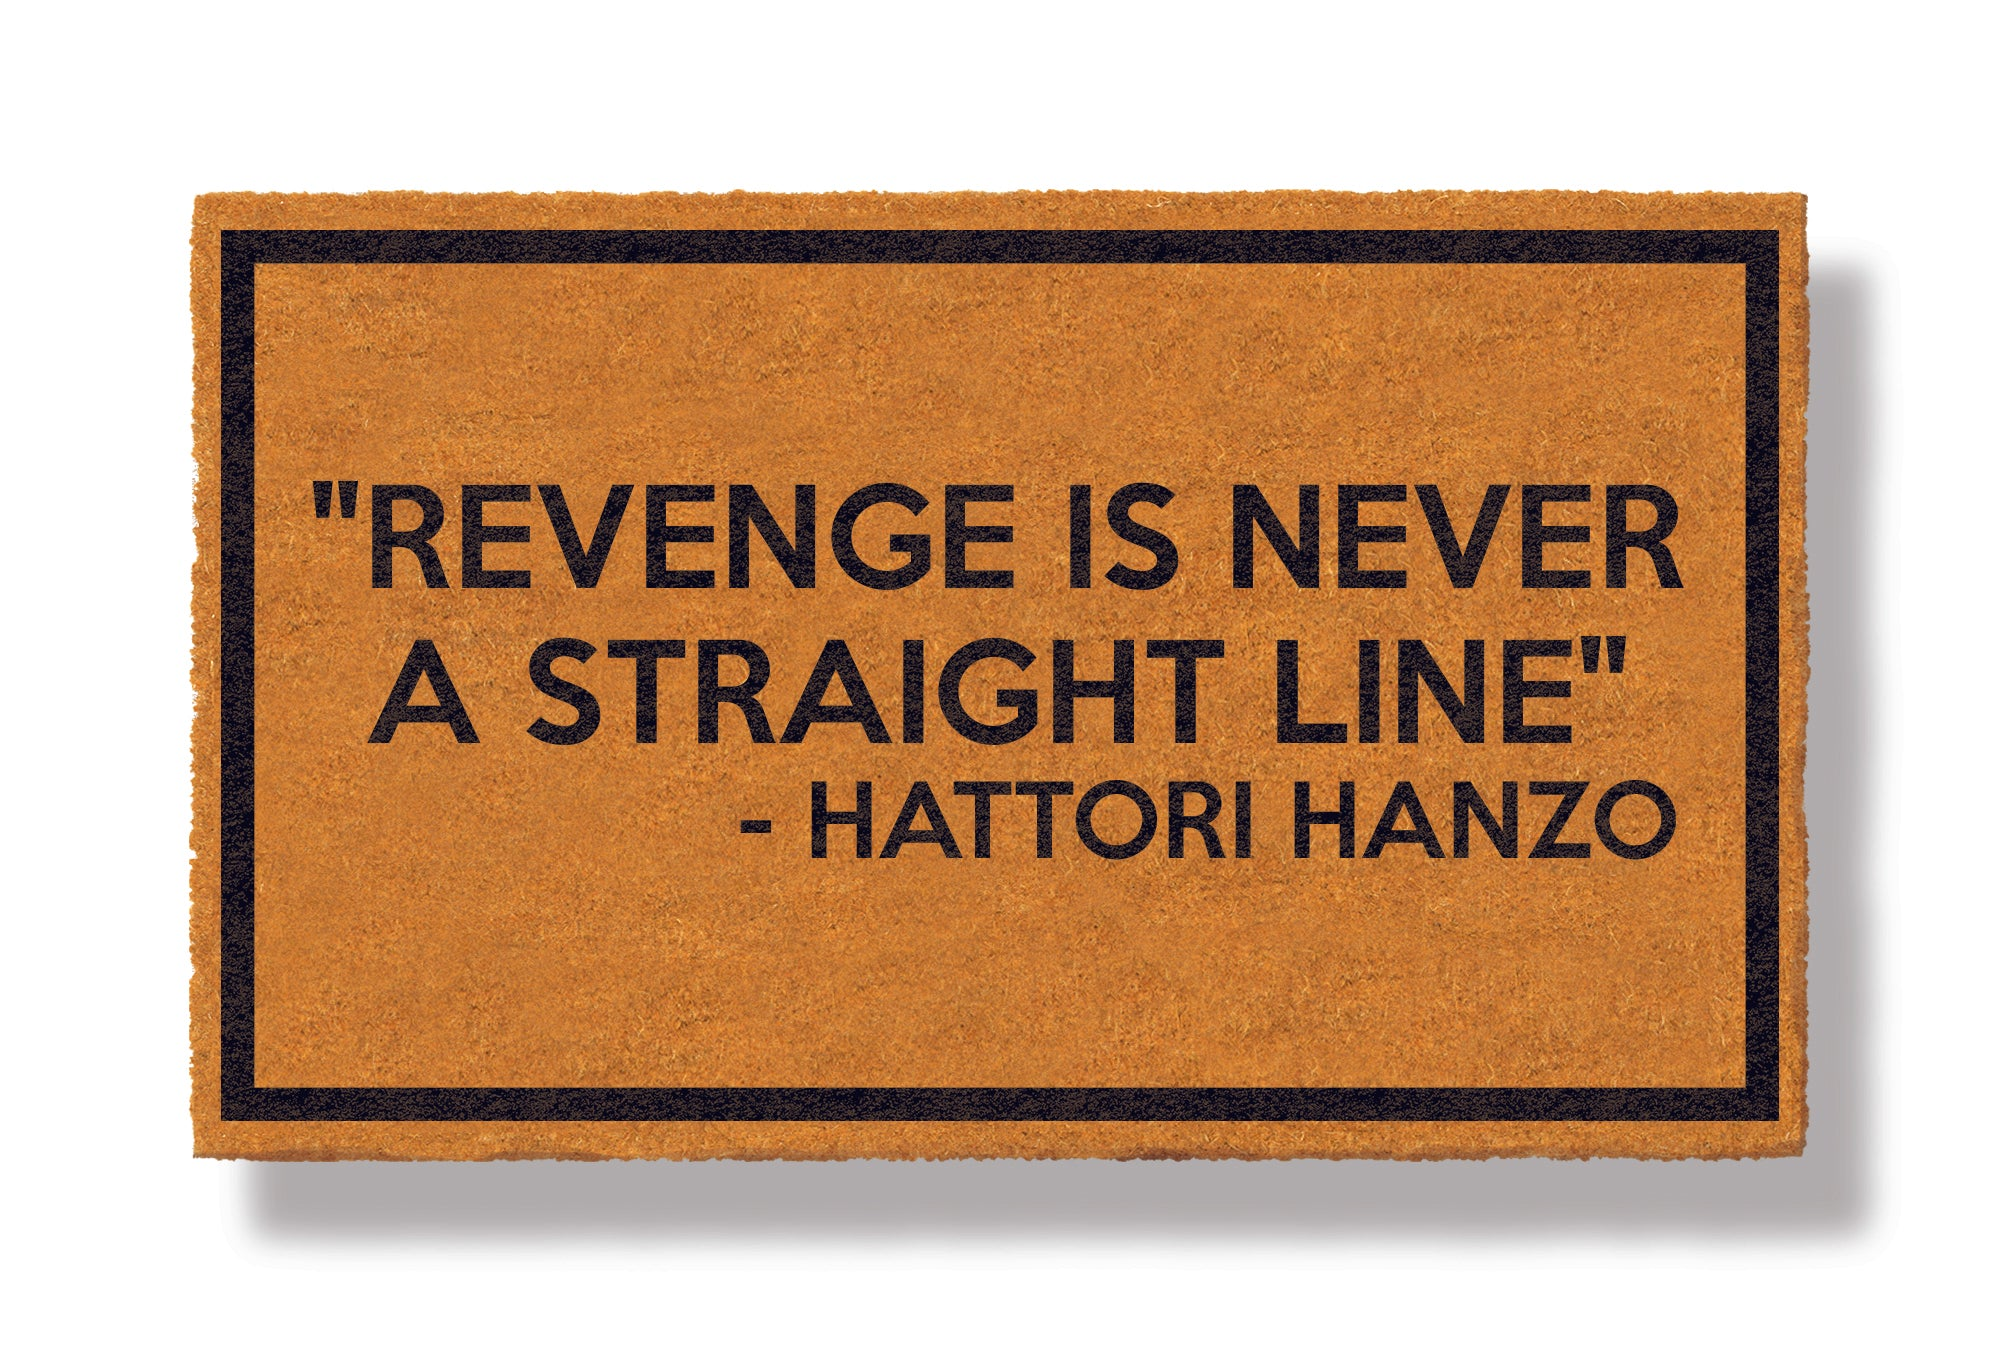 "This coir welcome mat is a funny doormat on a white background with a drop shadow. The brown doormat has a black border and has black centered text that reads ""Revenge Is Never A Straight Line"" - Hattori Hanzo."